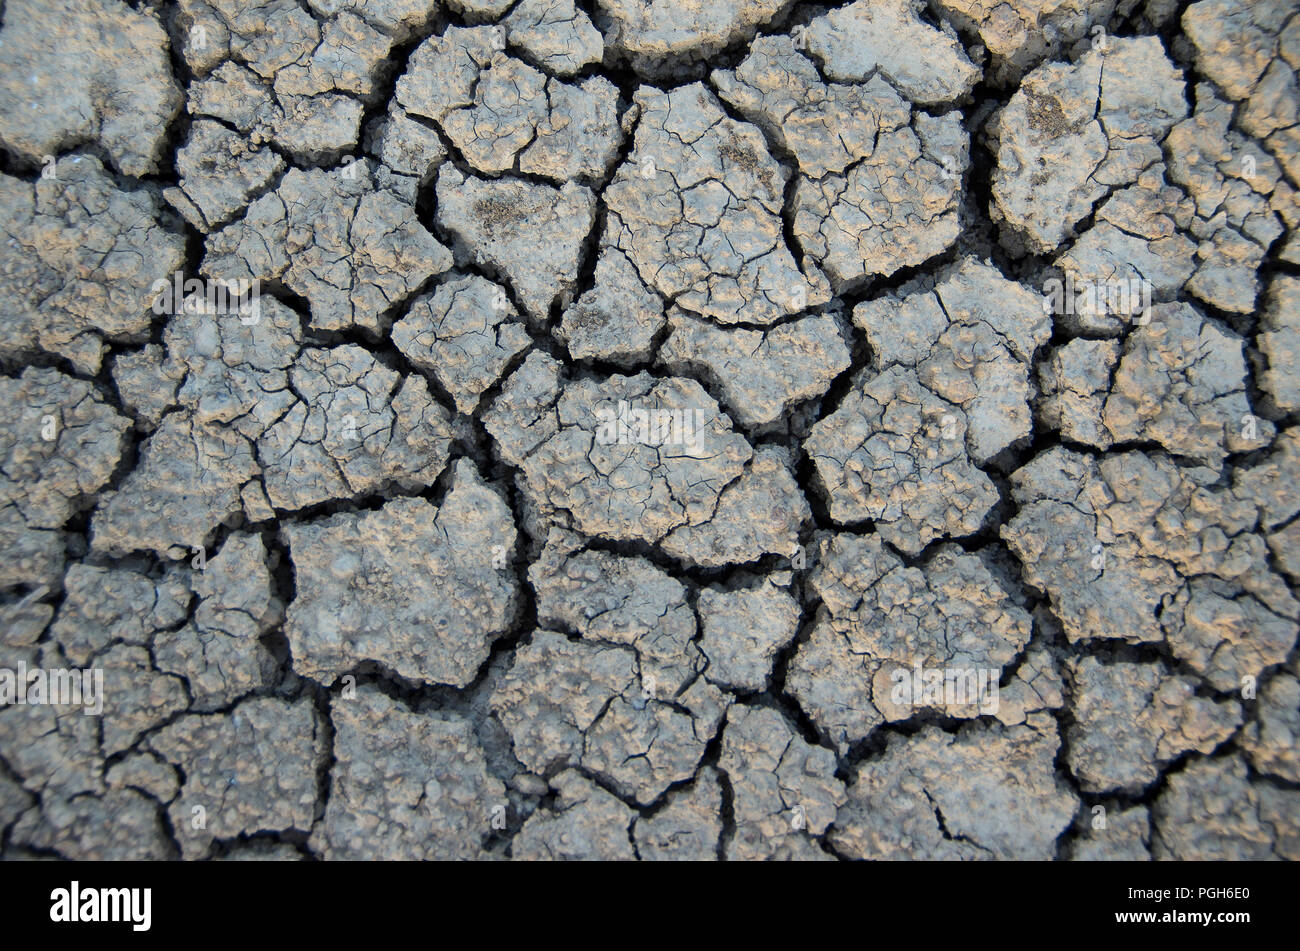 Climatic changes. Dry ground texture due to drought. Global warming. - Stock Image